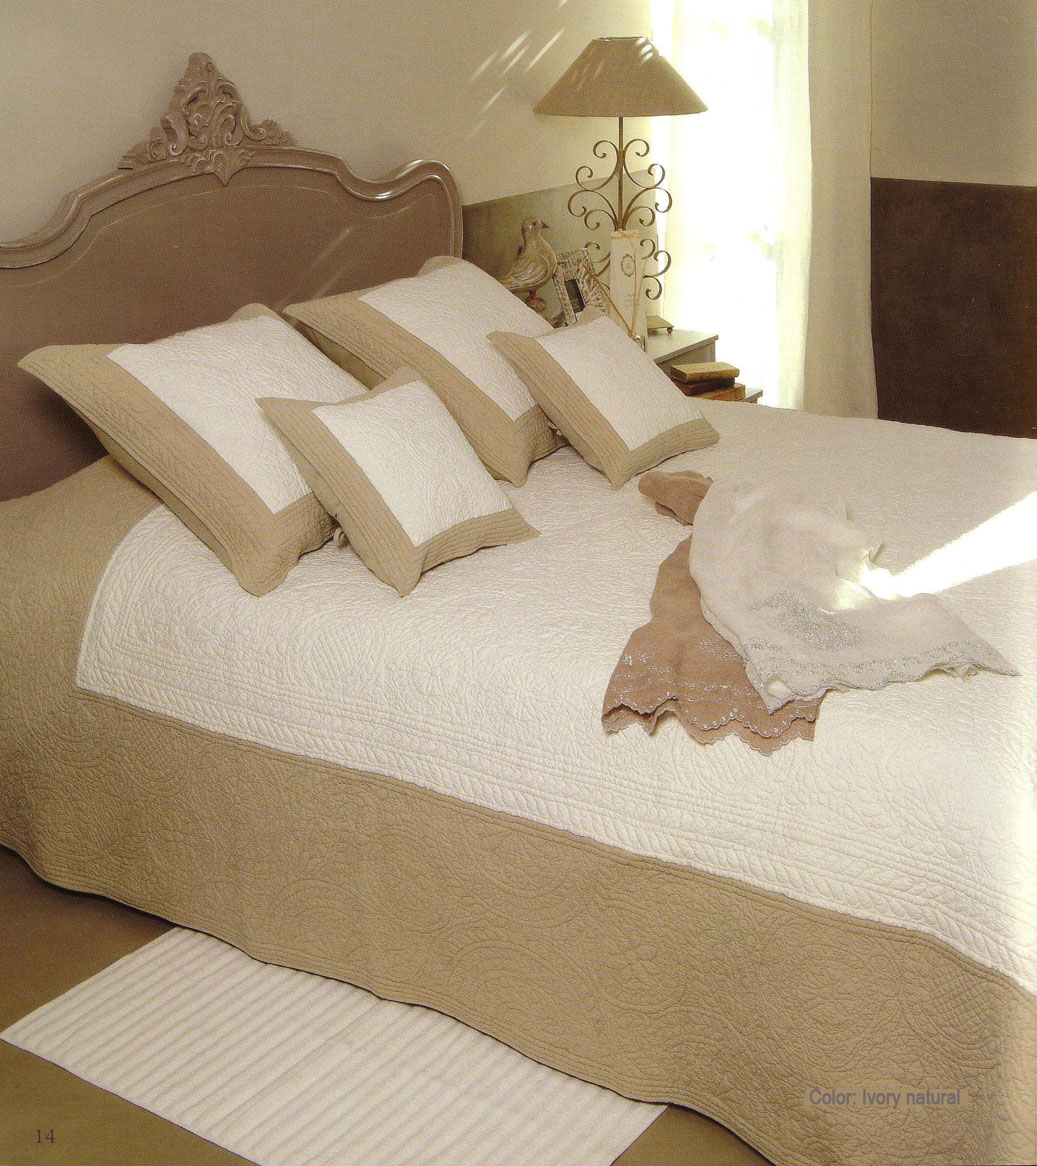 Provencal Boutis bed cover, bedspread (Pulsion)